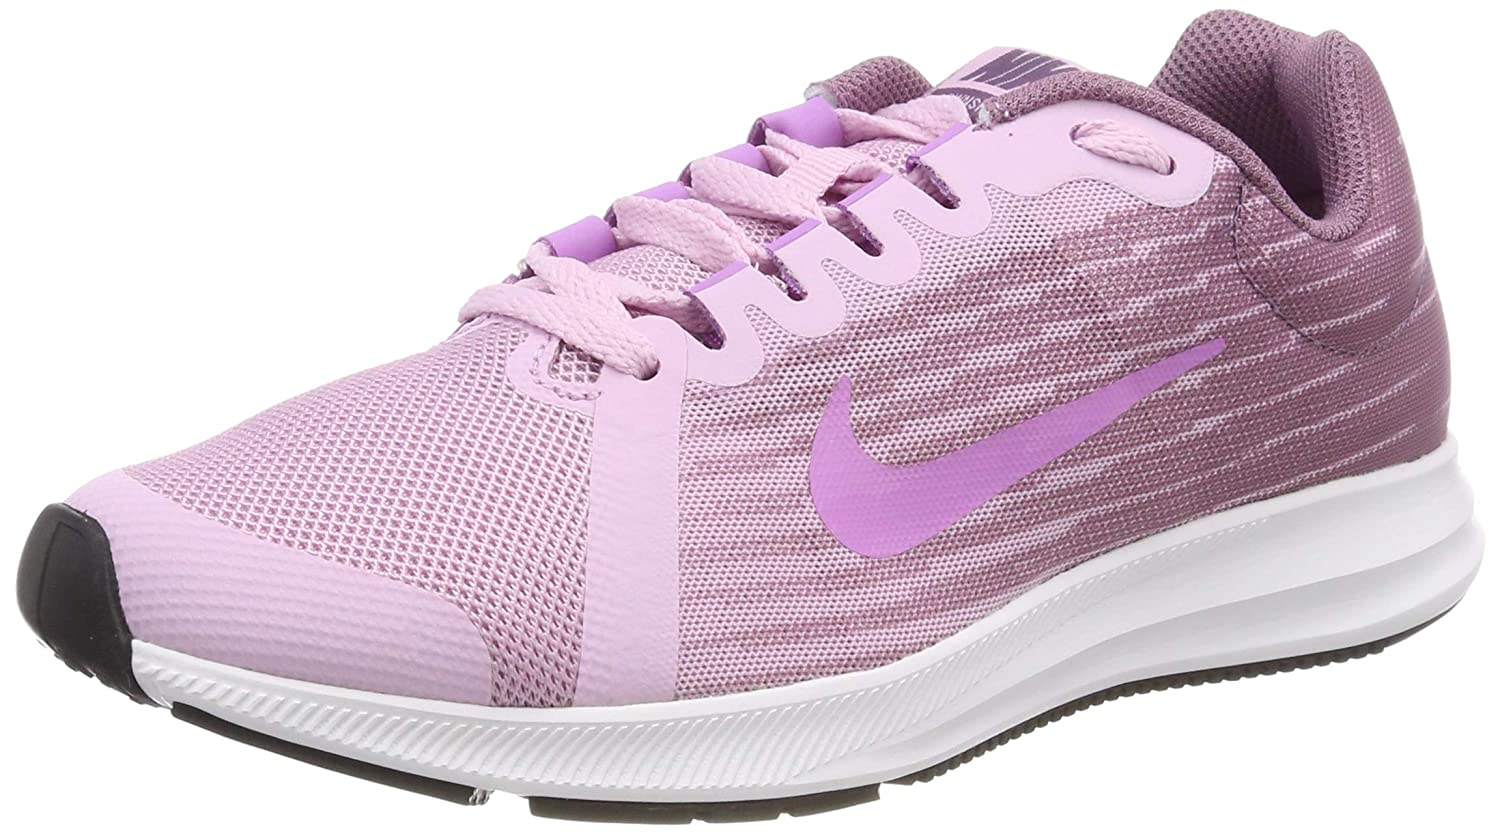 Nike Girls' Downshifter 8 (Gs) Training Shoes